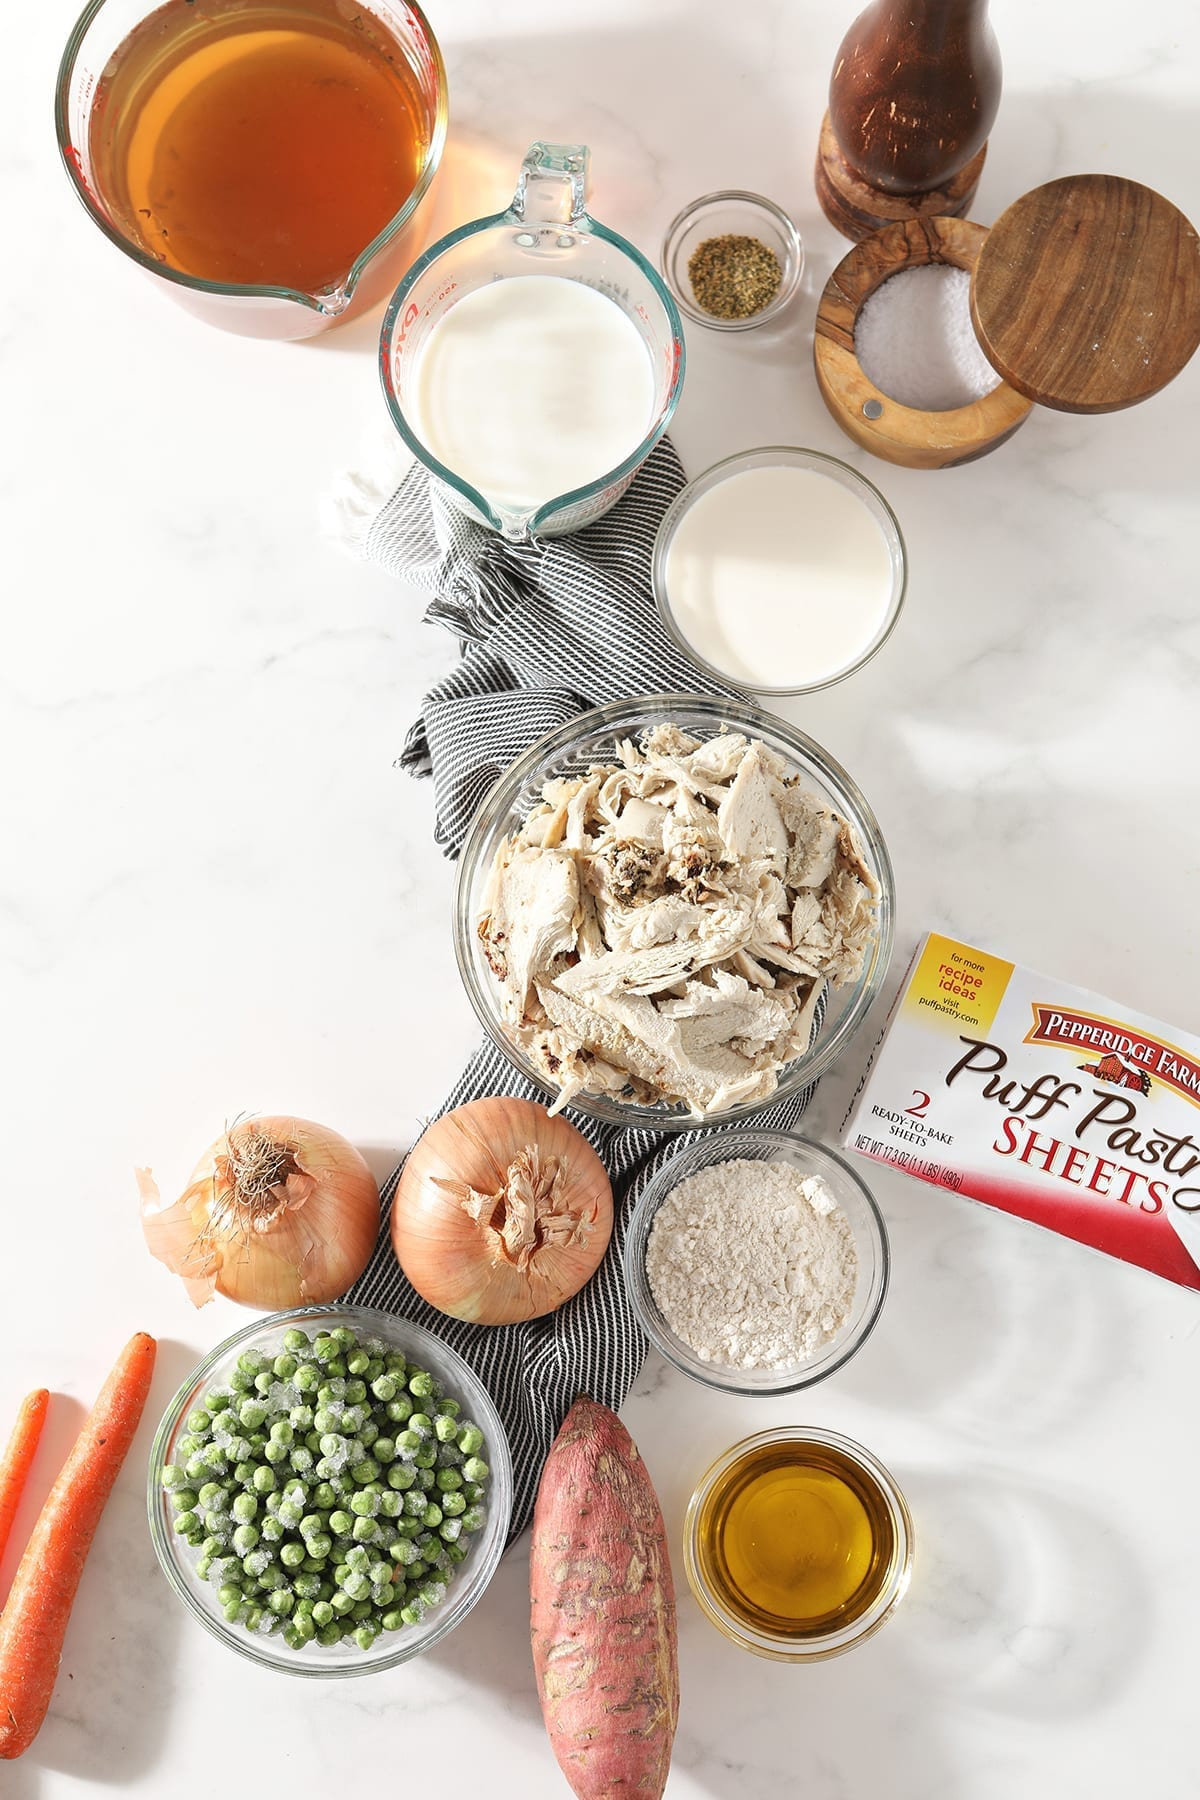 Shredded leftover turkey breast, vegetables, stock and milk, among other ingredients, sit on a gray striped towel on a marble countertop in bowls